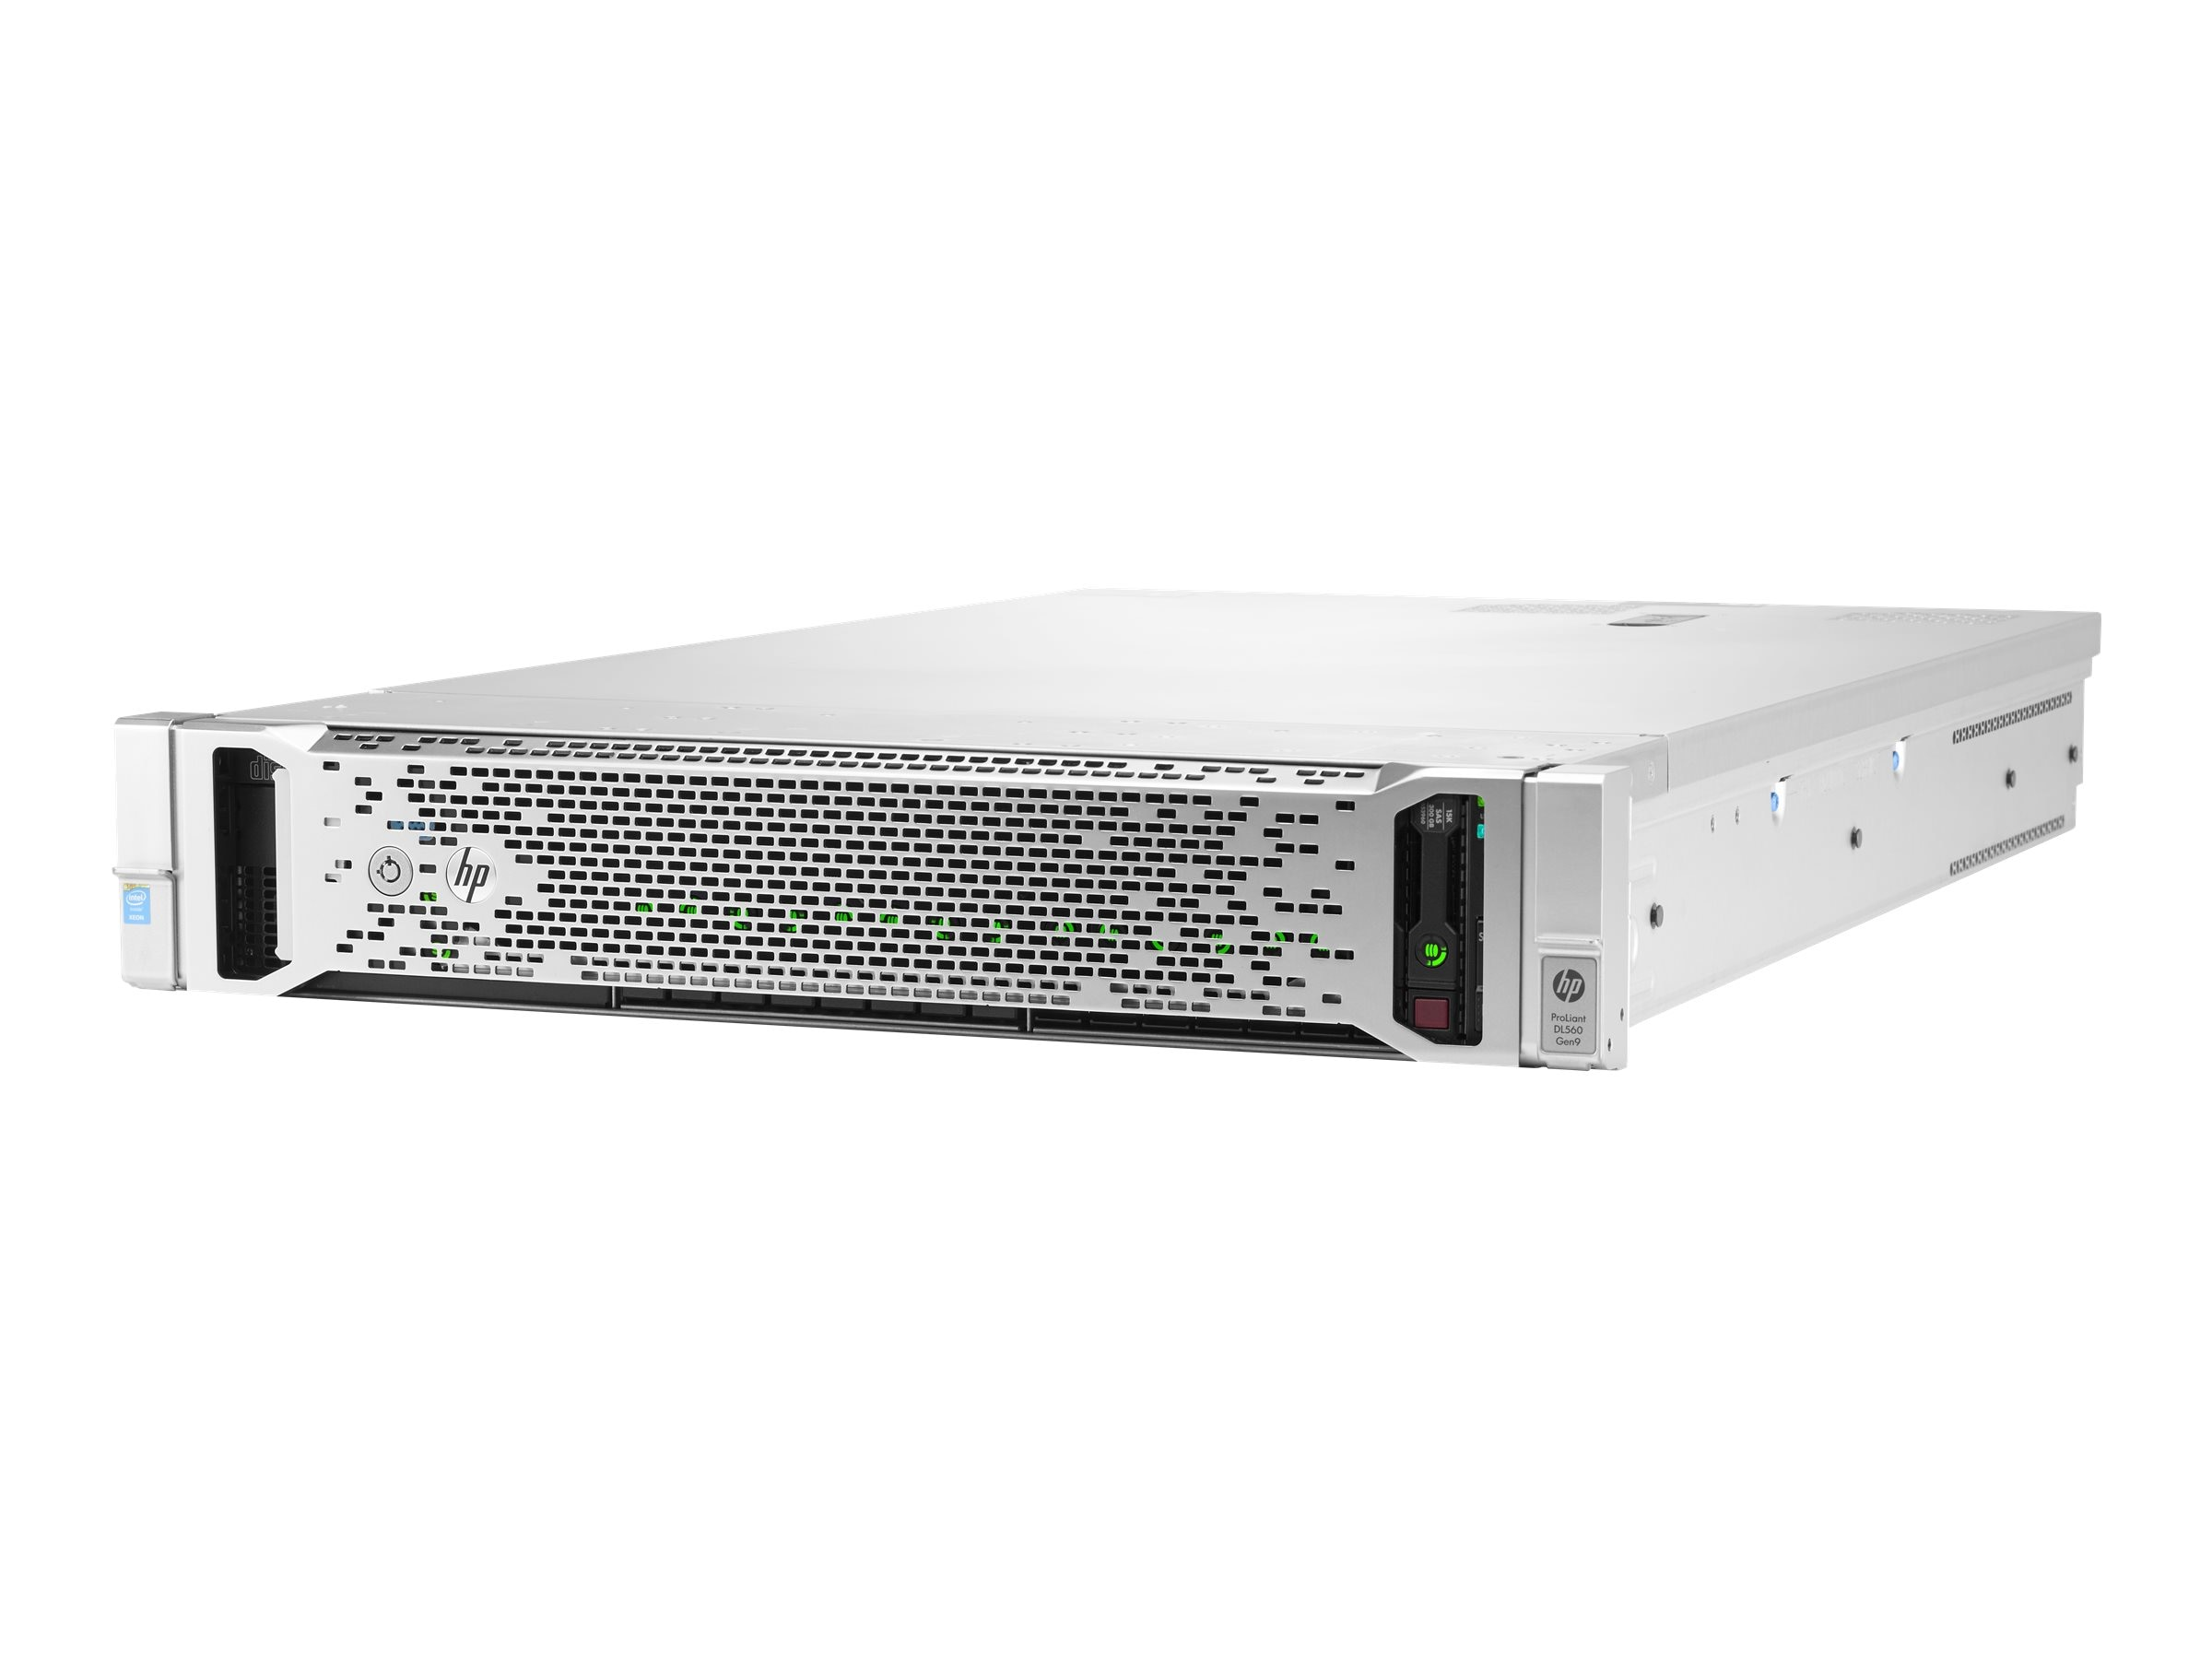 HPE ProLiant DL560 Gen9 Intel 1.7GHz Xeon